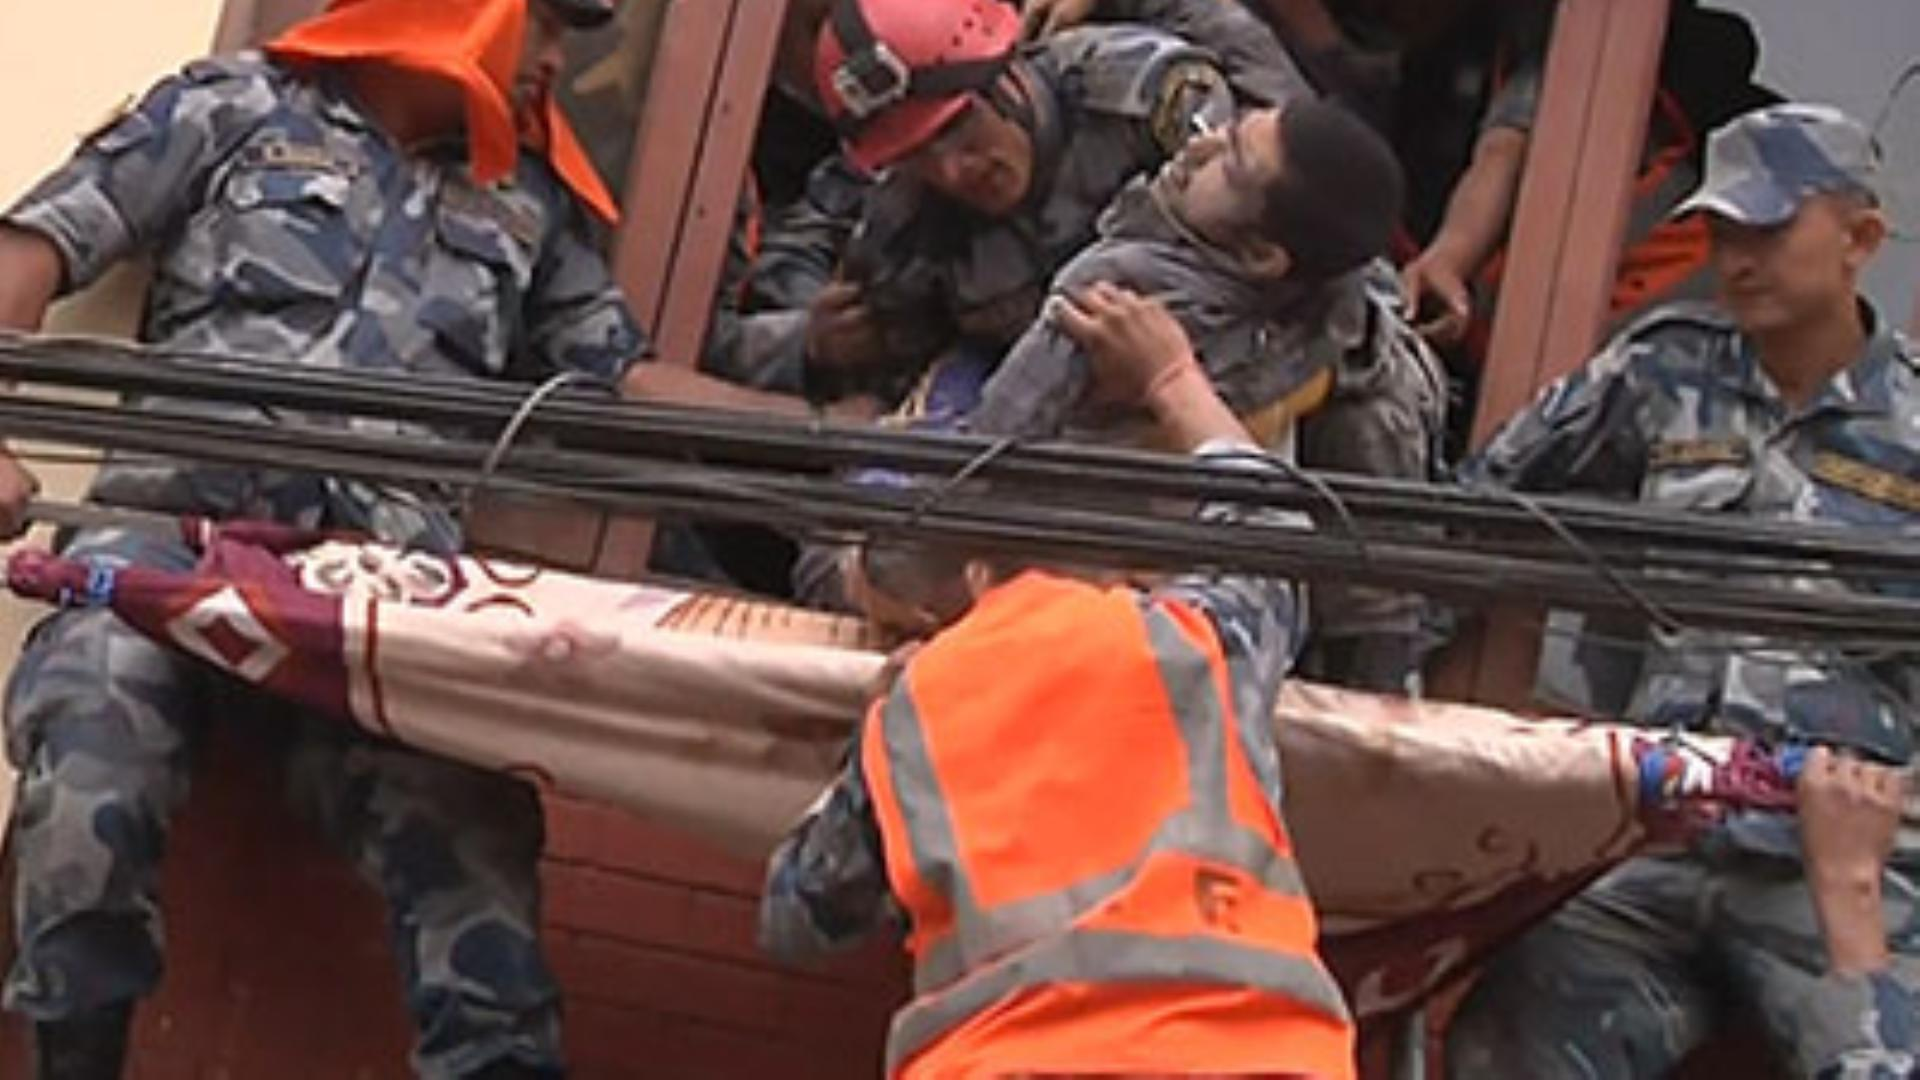 Rescuers struggle to reach many in Nepal quake, fear worst